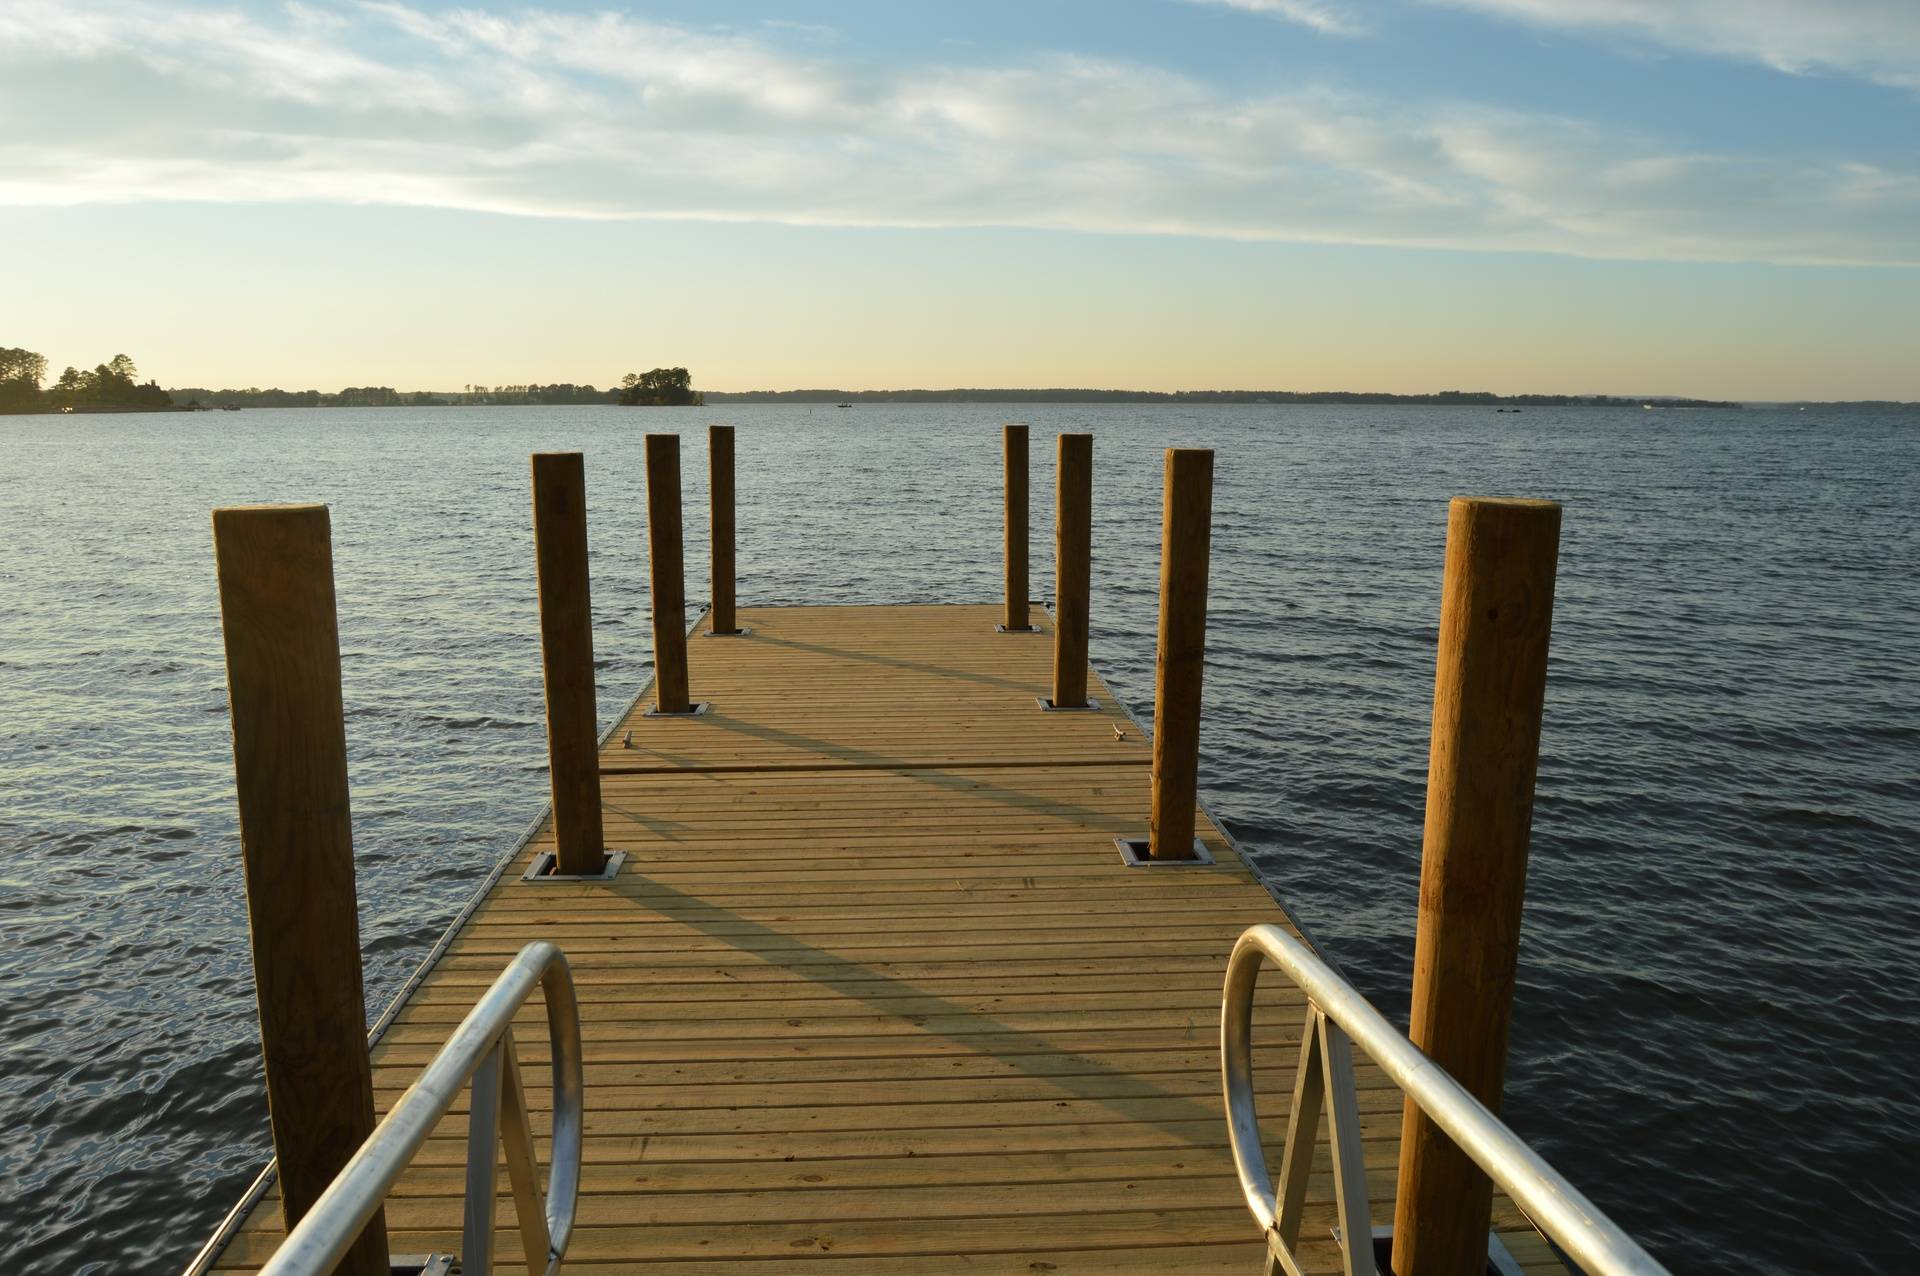 A Shared Floating Dock with 8 Pilings